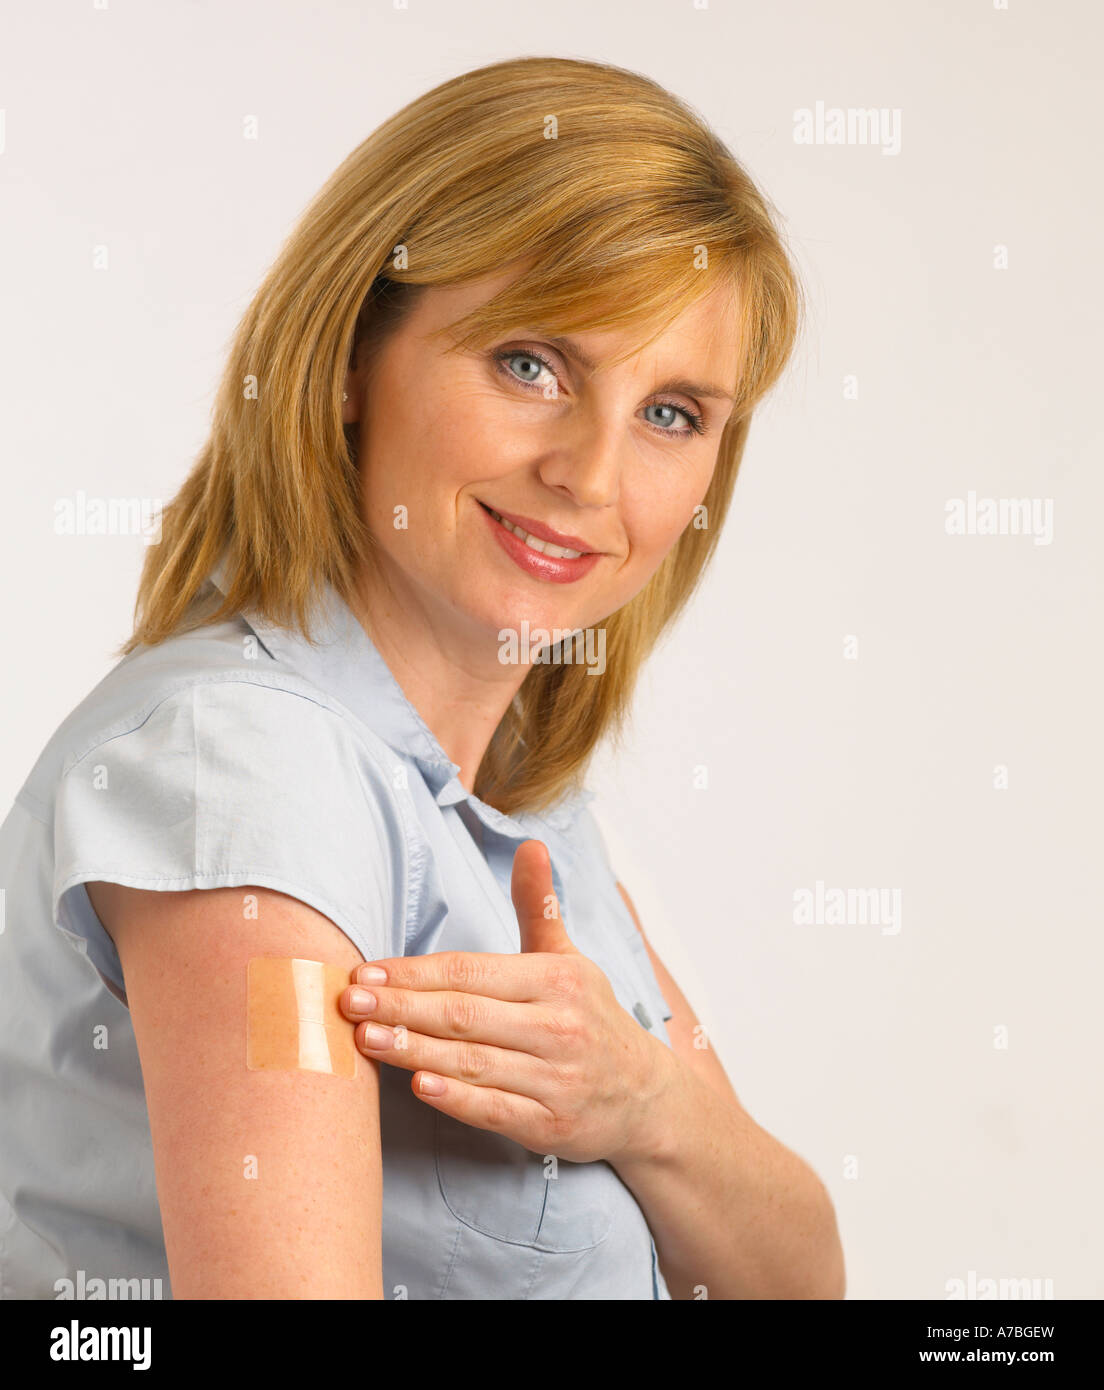 ATTRACTIVE HEALTHY YOUNG BLONDE WOMAN APPLYING TRANSPARENT NICOTINE PATCH TO ARM - Stock Image